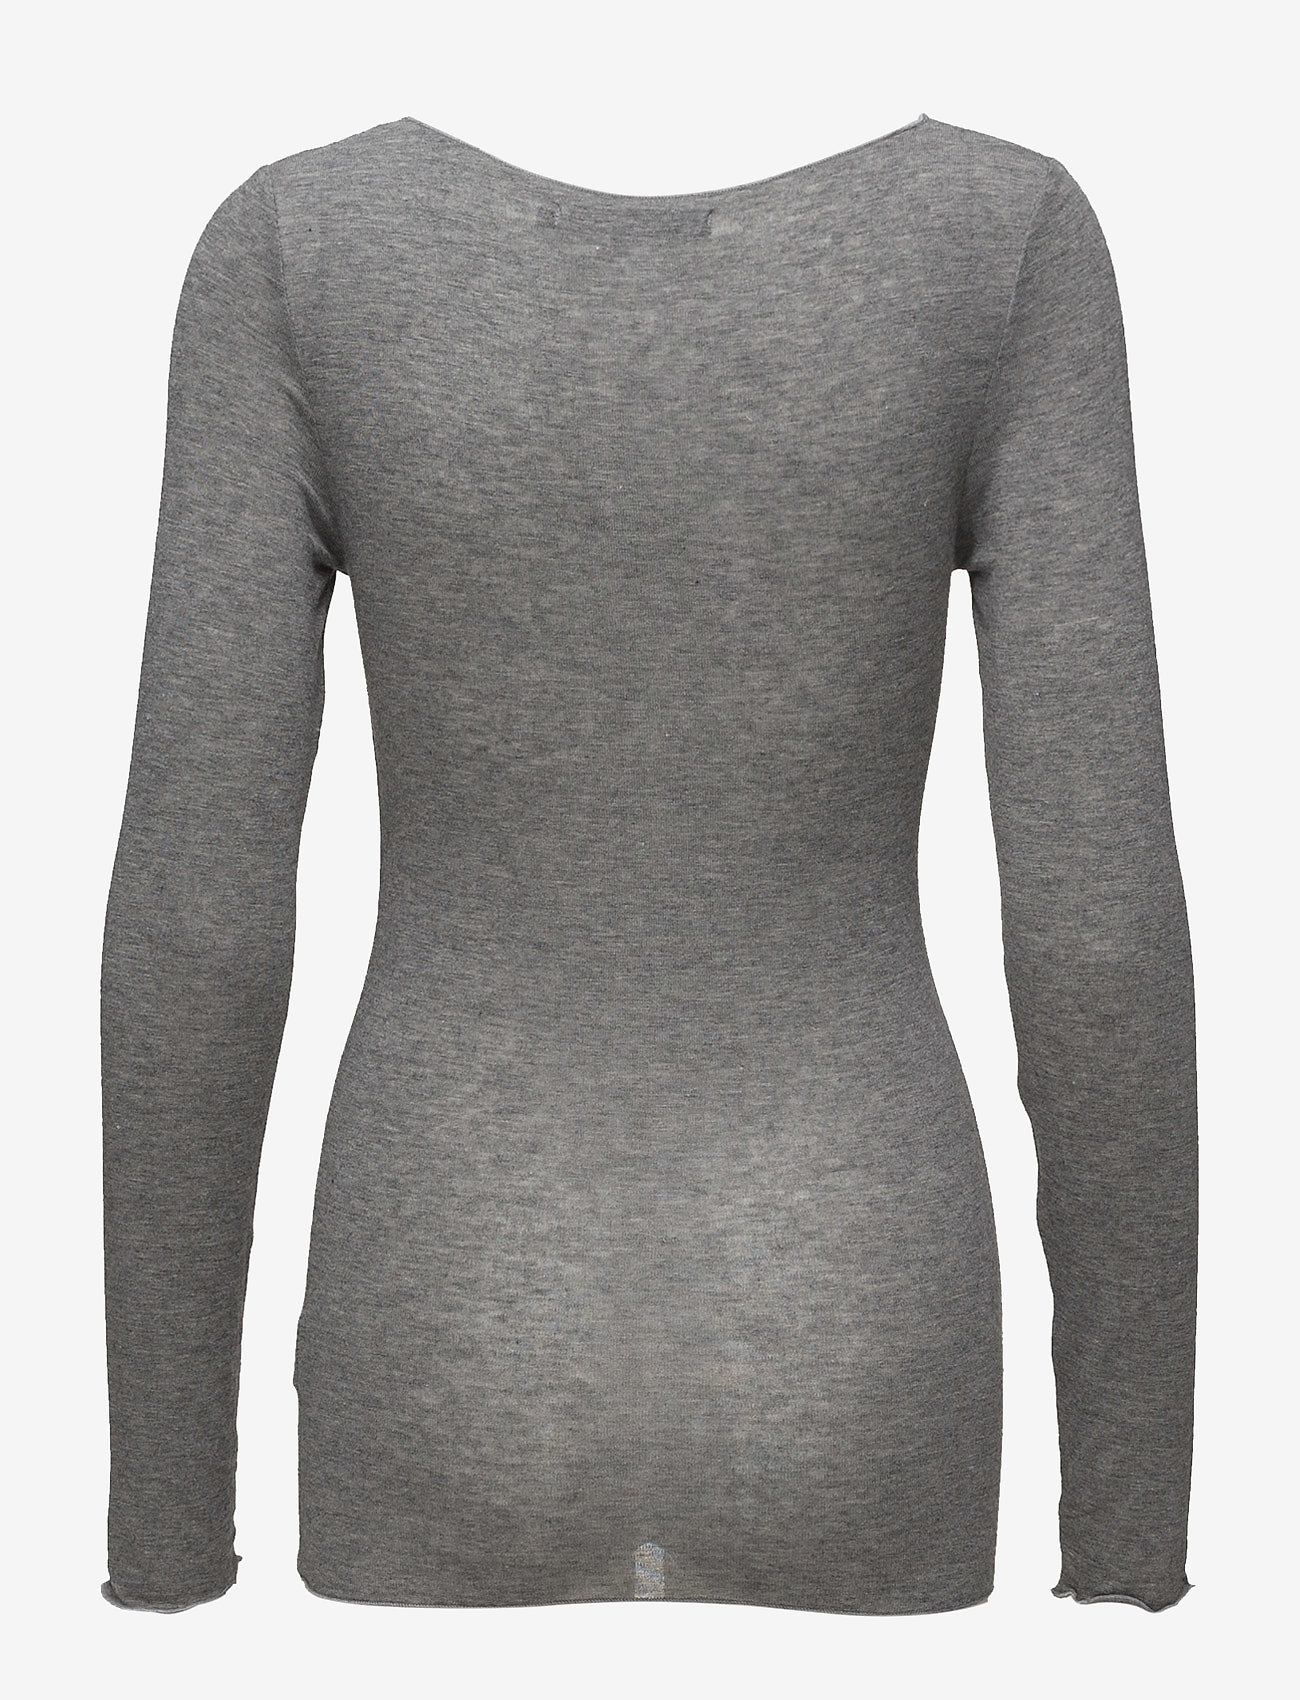 Minus - Claudia top - langærmede toppe - light grey melange - 1